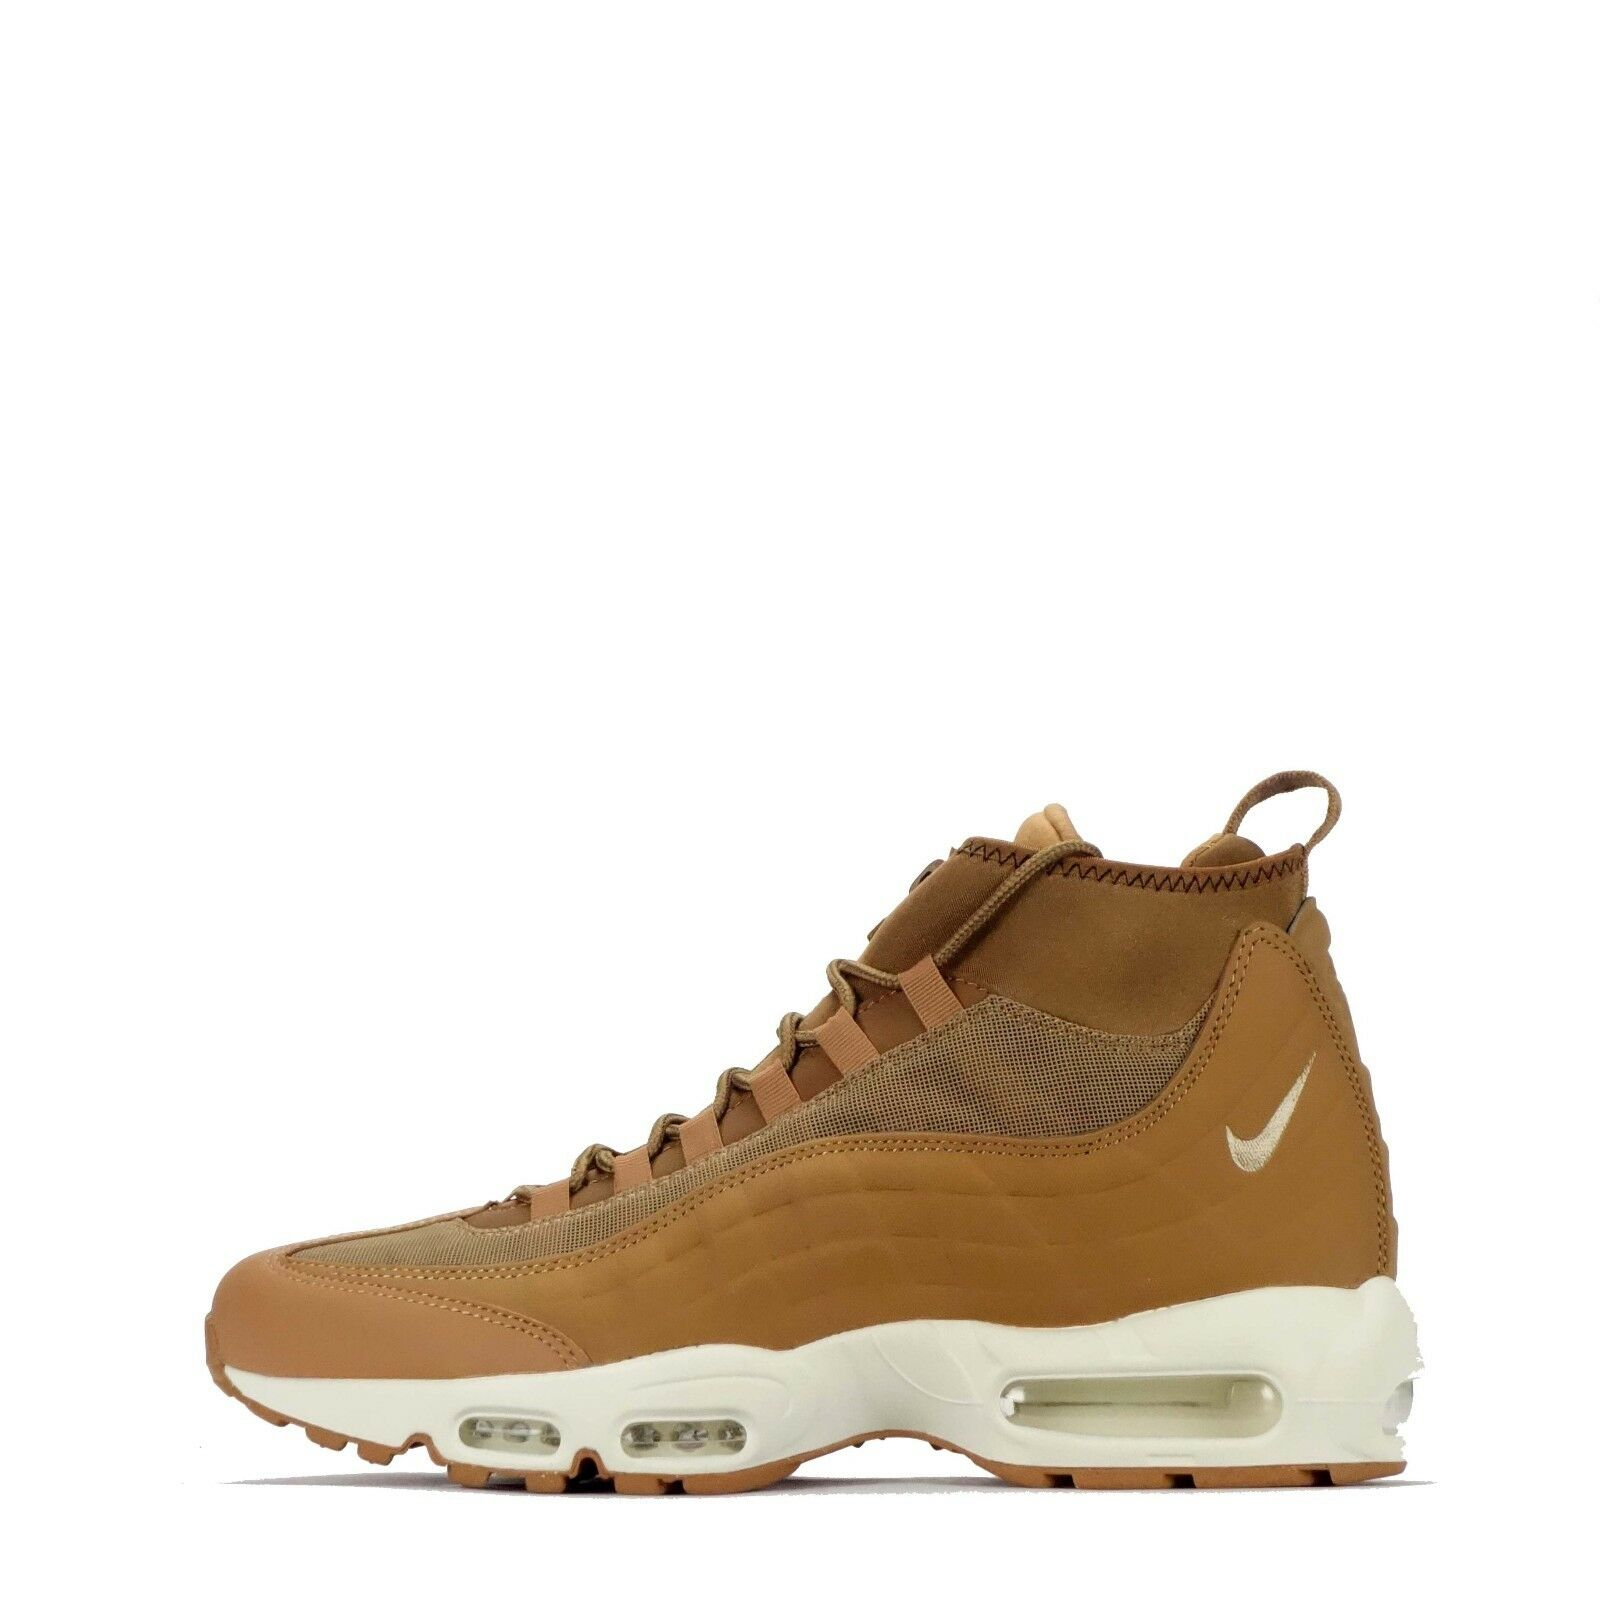 Nike Air Max 95 Sneakerboot homme Mid Style chaussures in Flax/Ale Brown